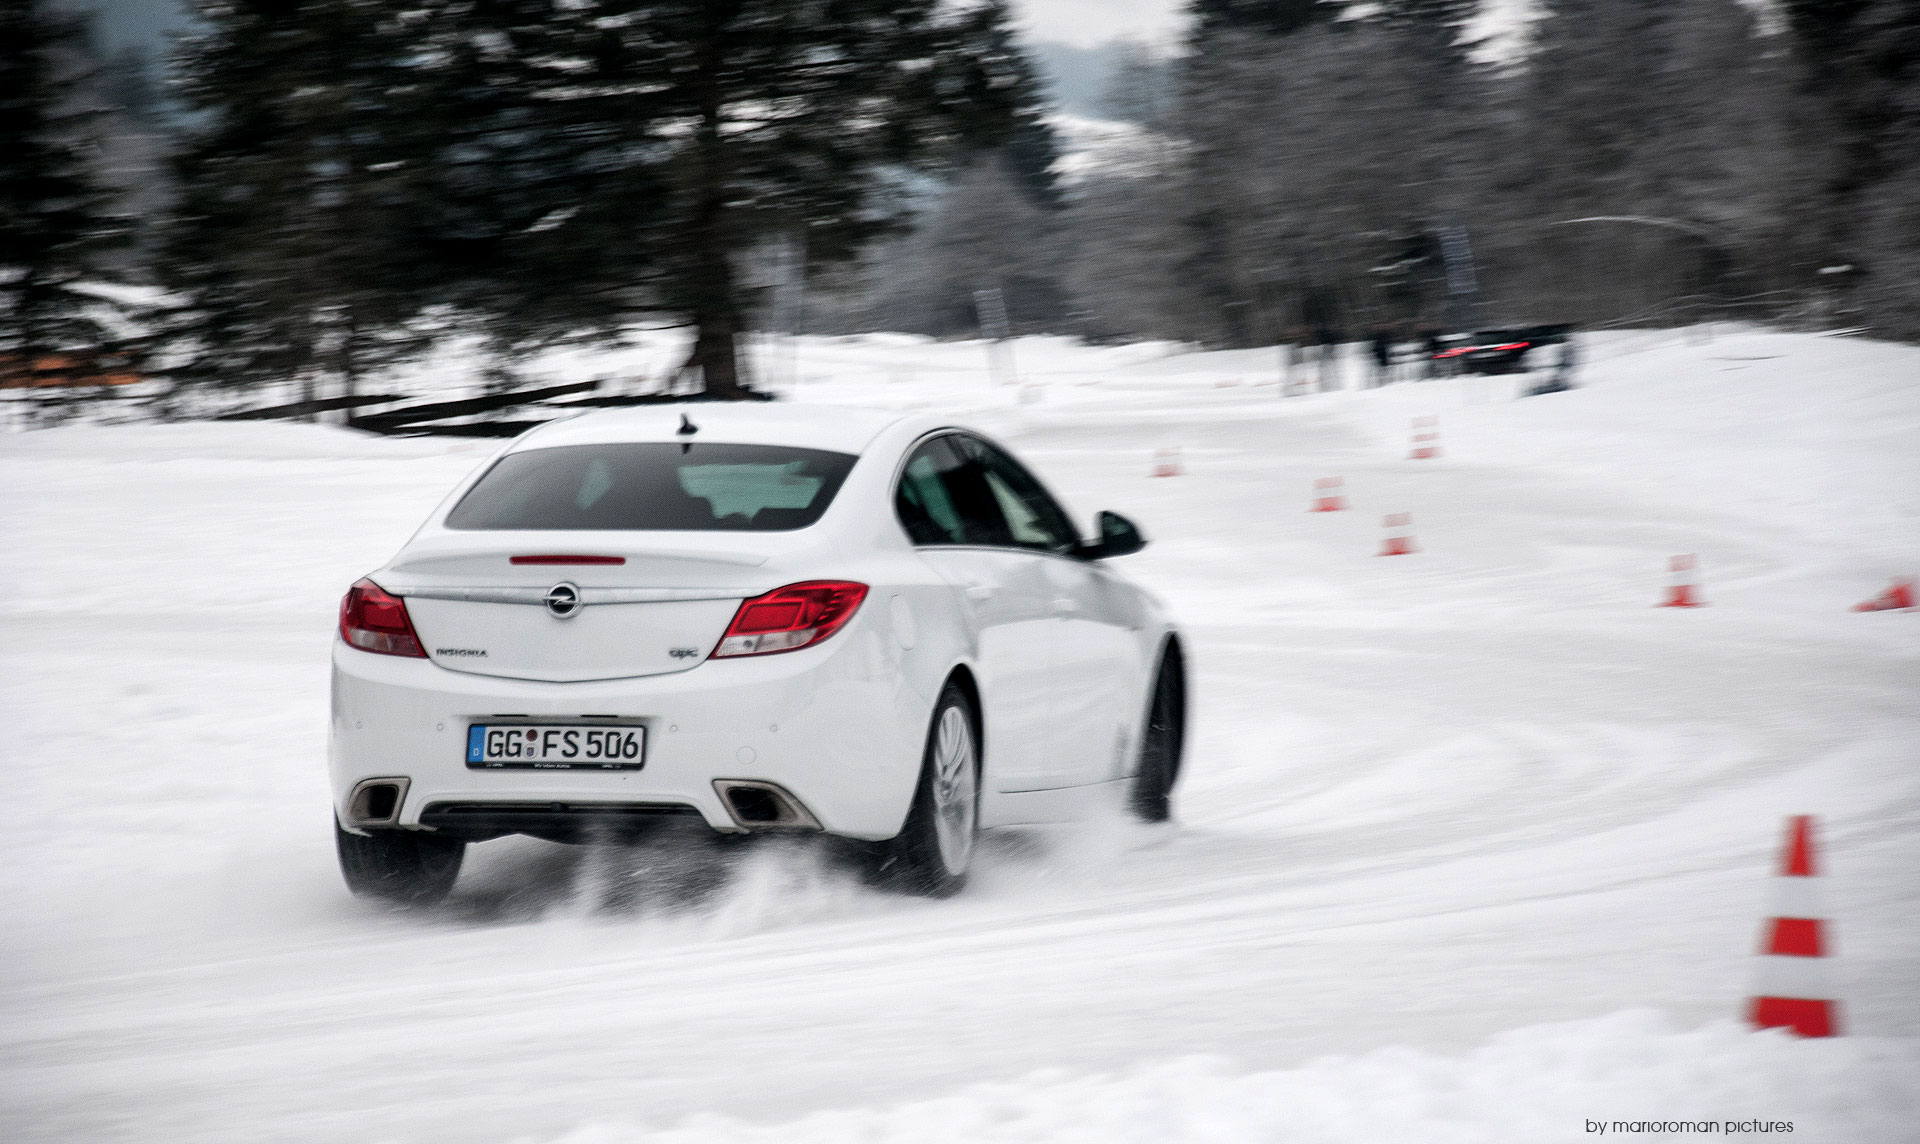 Opel Wintertraining 2013 / (c) marioroman pictures